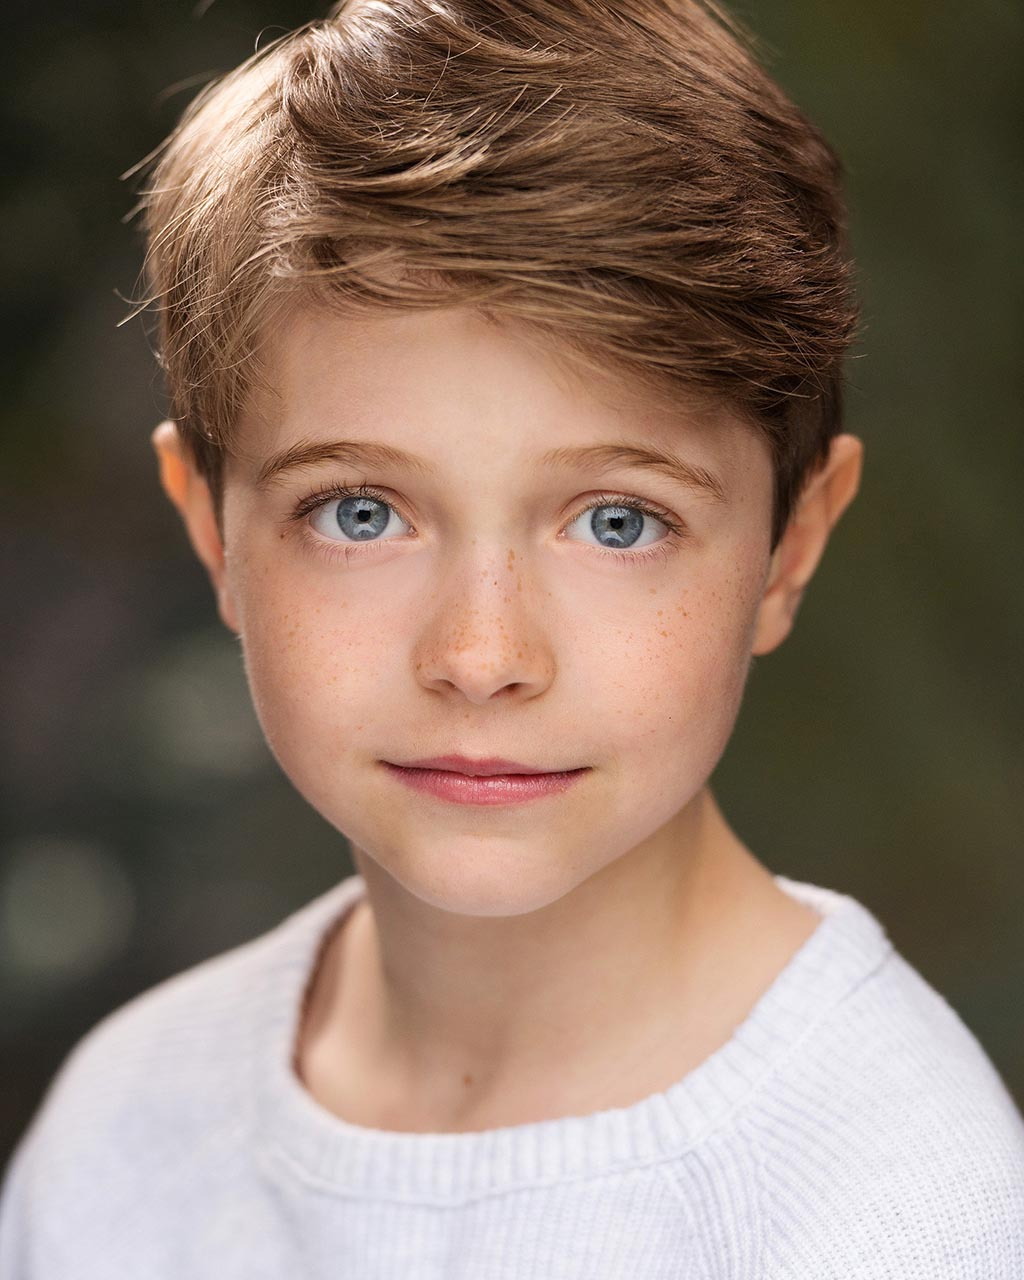 Headshots Young Performers MAD Photography London 8170